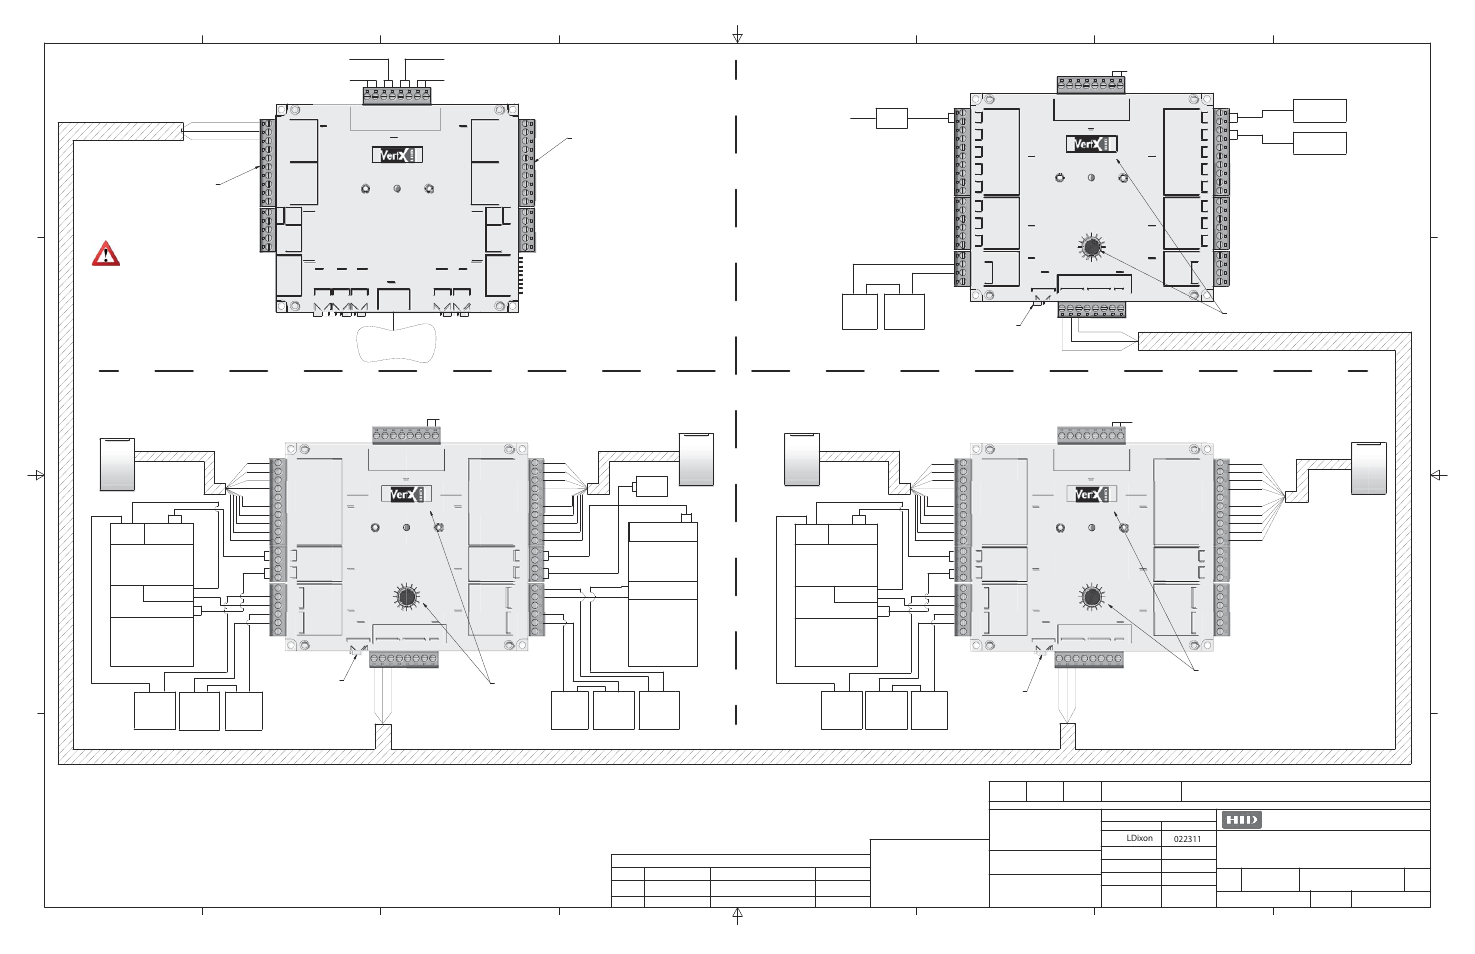 hid edge wiring diagram free download schematic example electrical rh cranejapan co